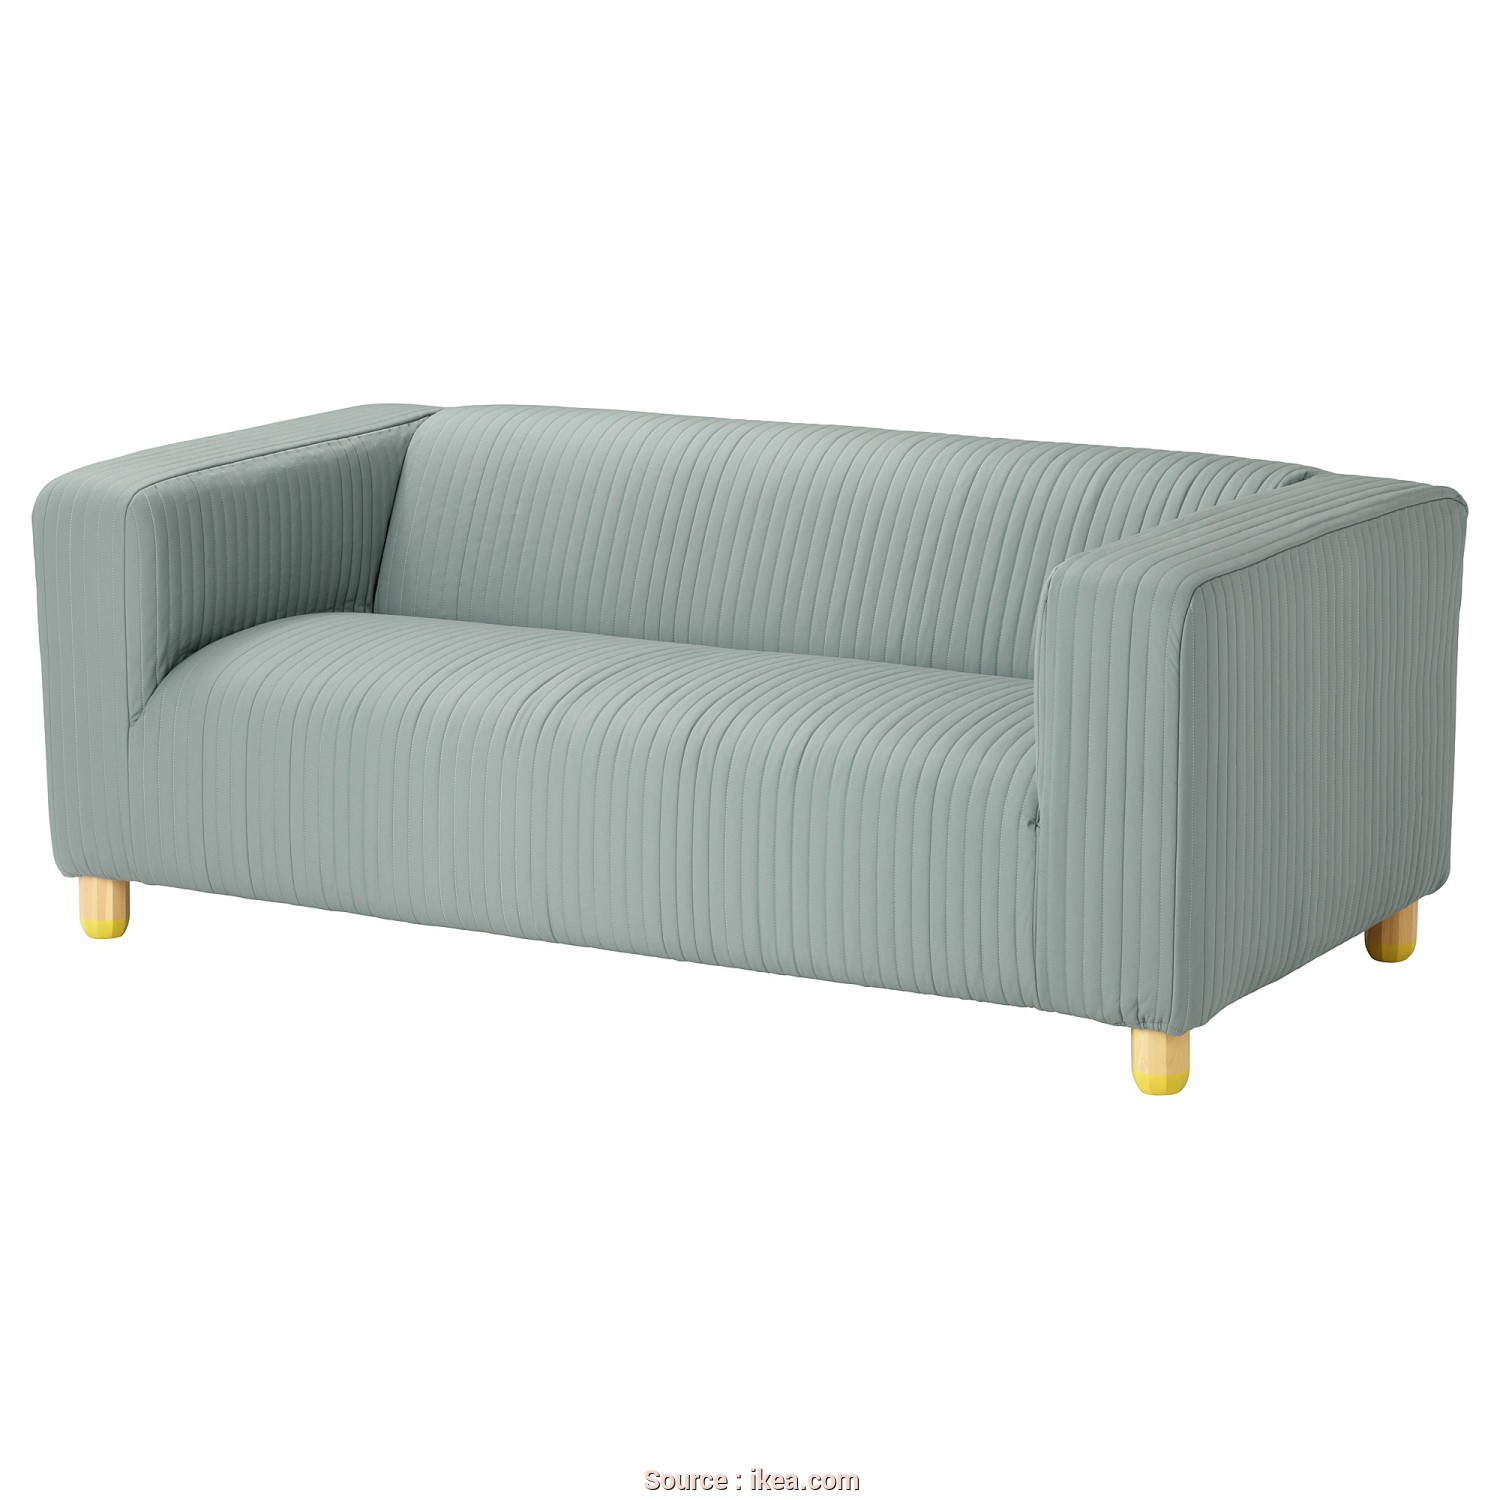 Ikea Klippan Covers Uk, Eccezionale KLIPPAN Cover Two-Seat Sofa Lyckebyn Dark Grey, IKEA